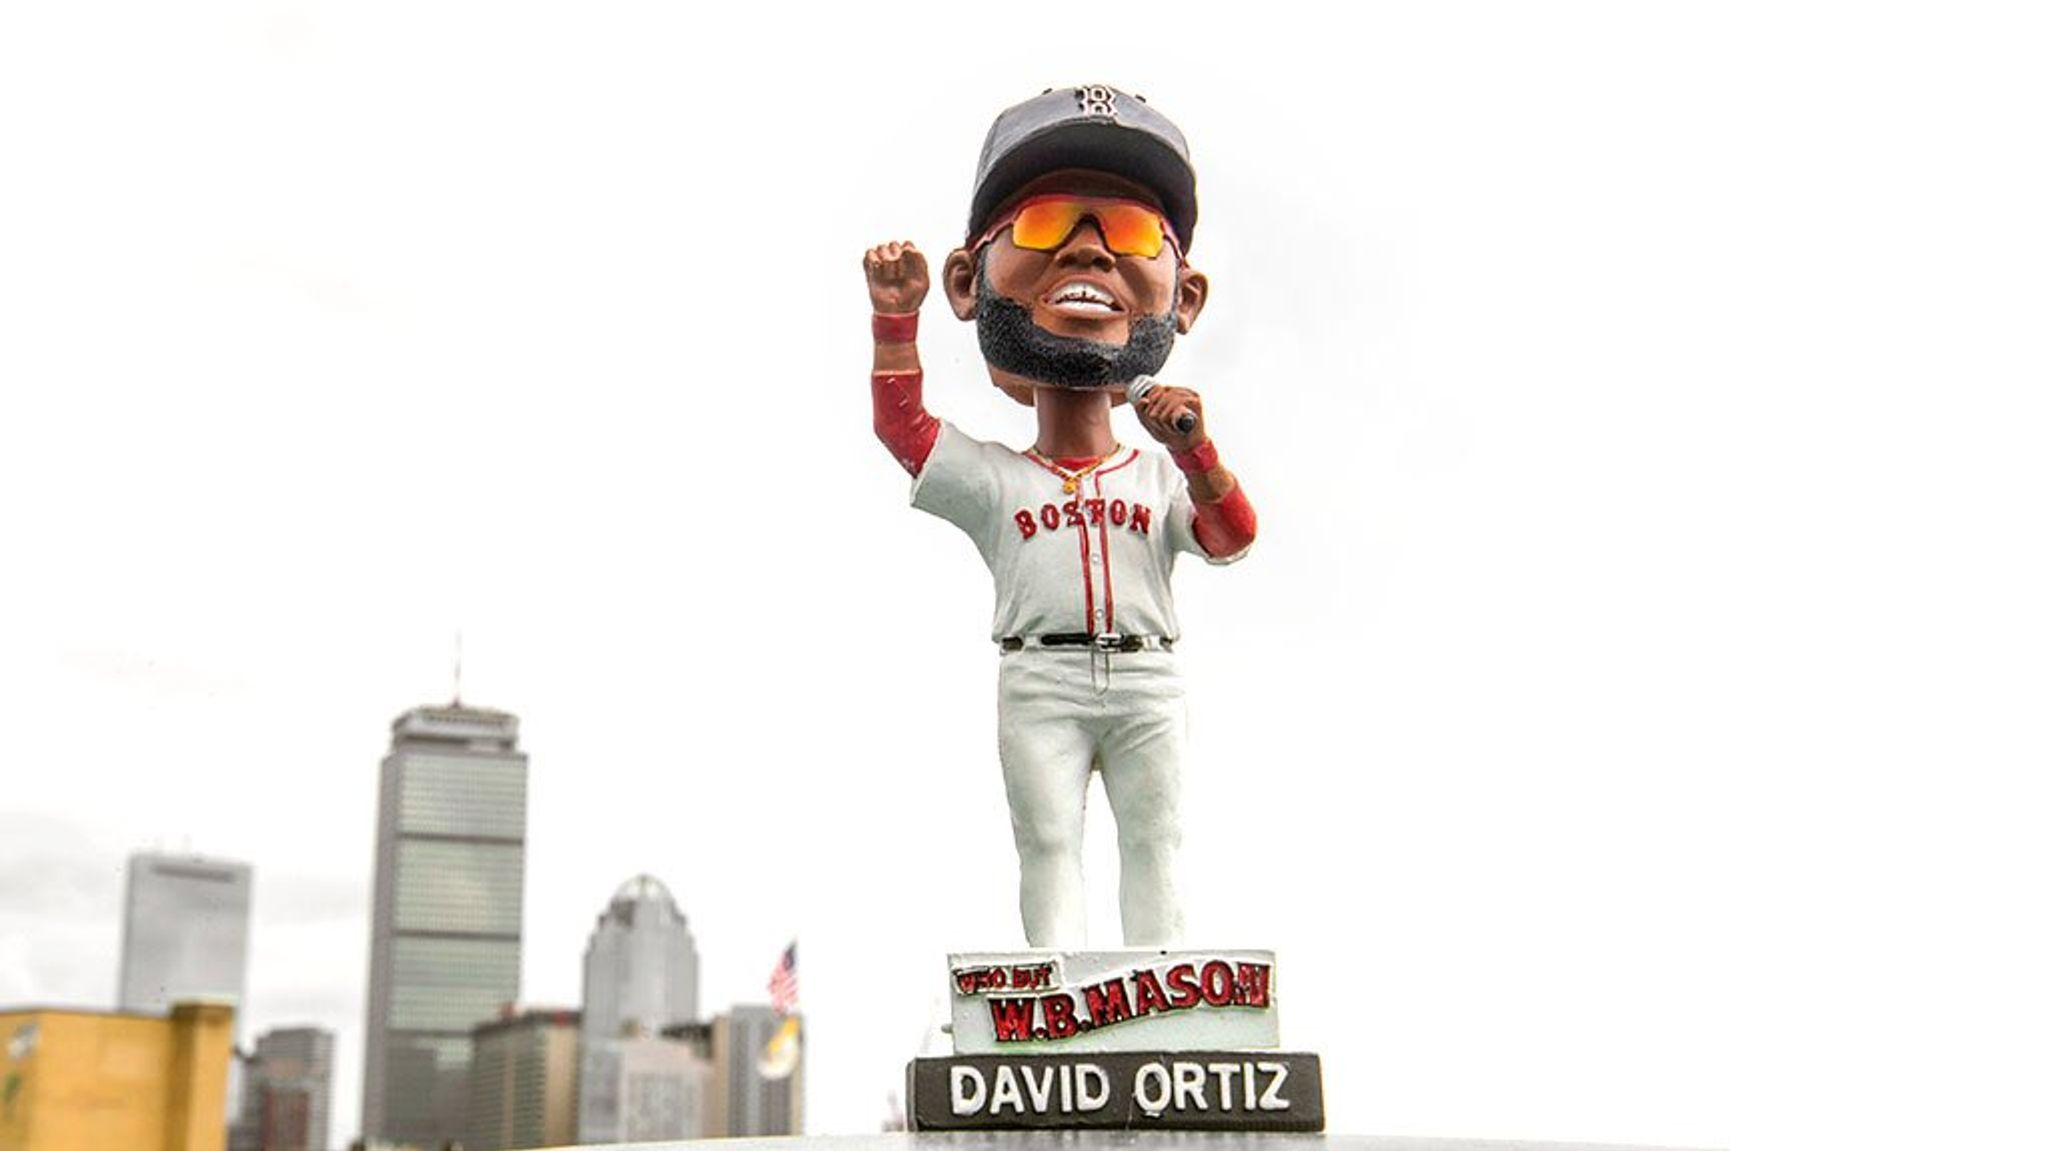 cd5eabc17991 David Ortiz bobblehead pulled over racism concerns - Washington Times